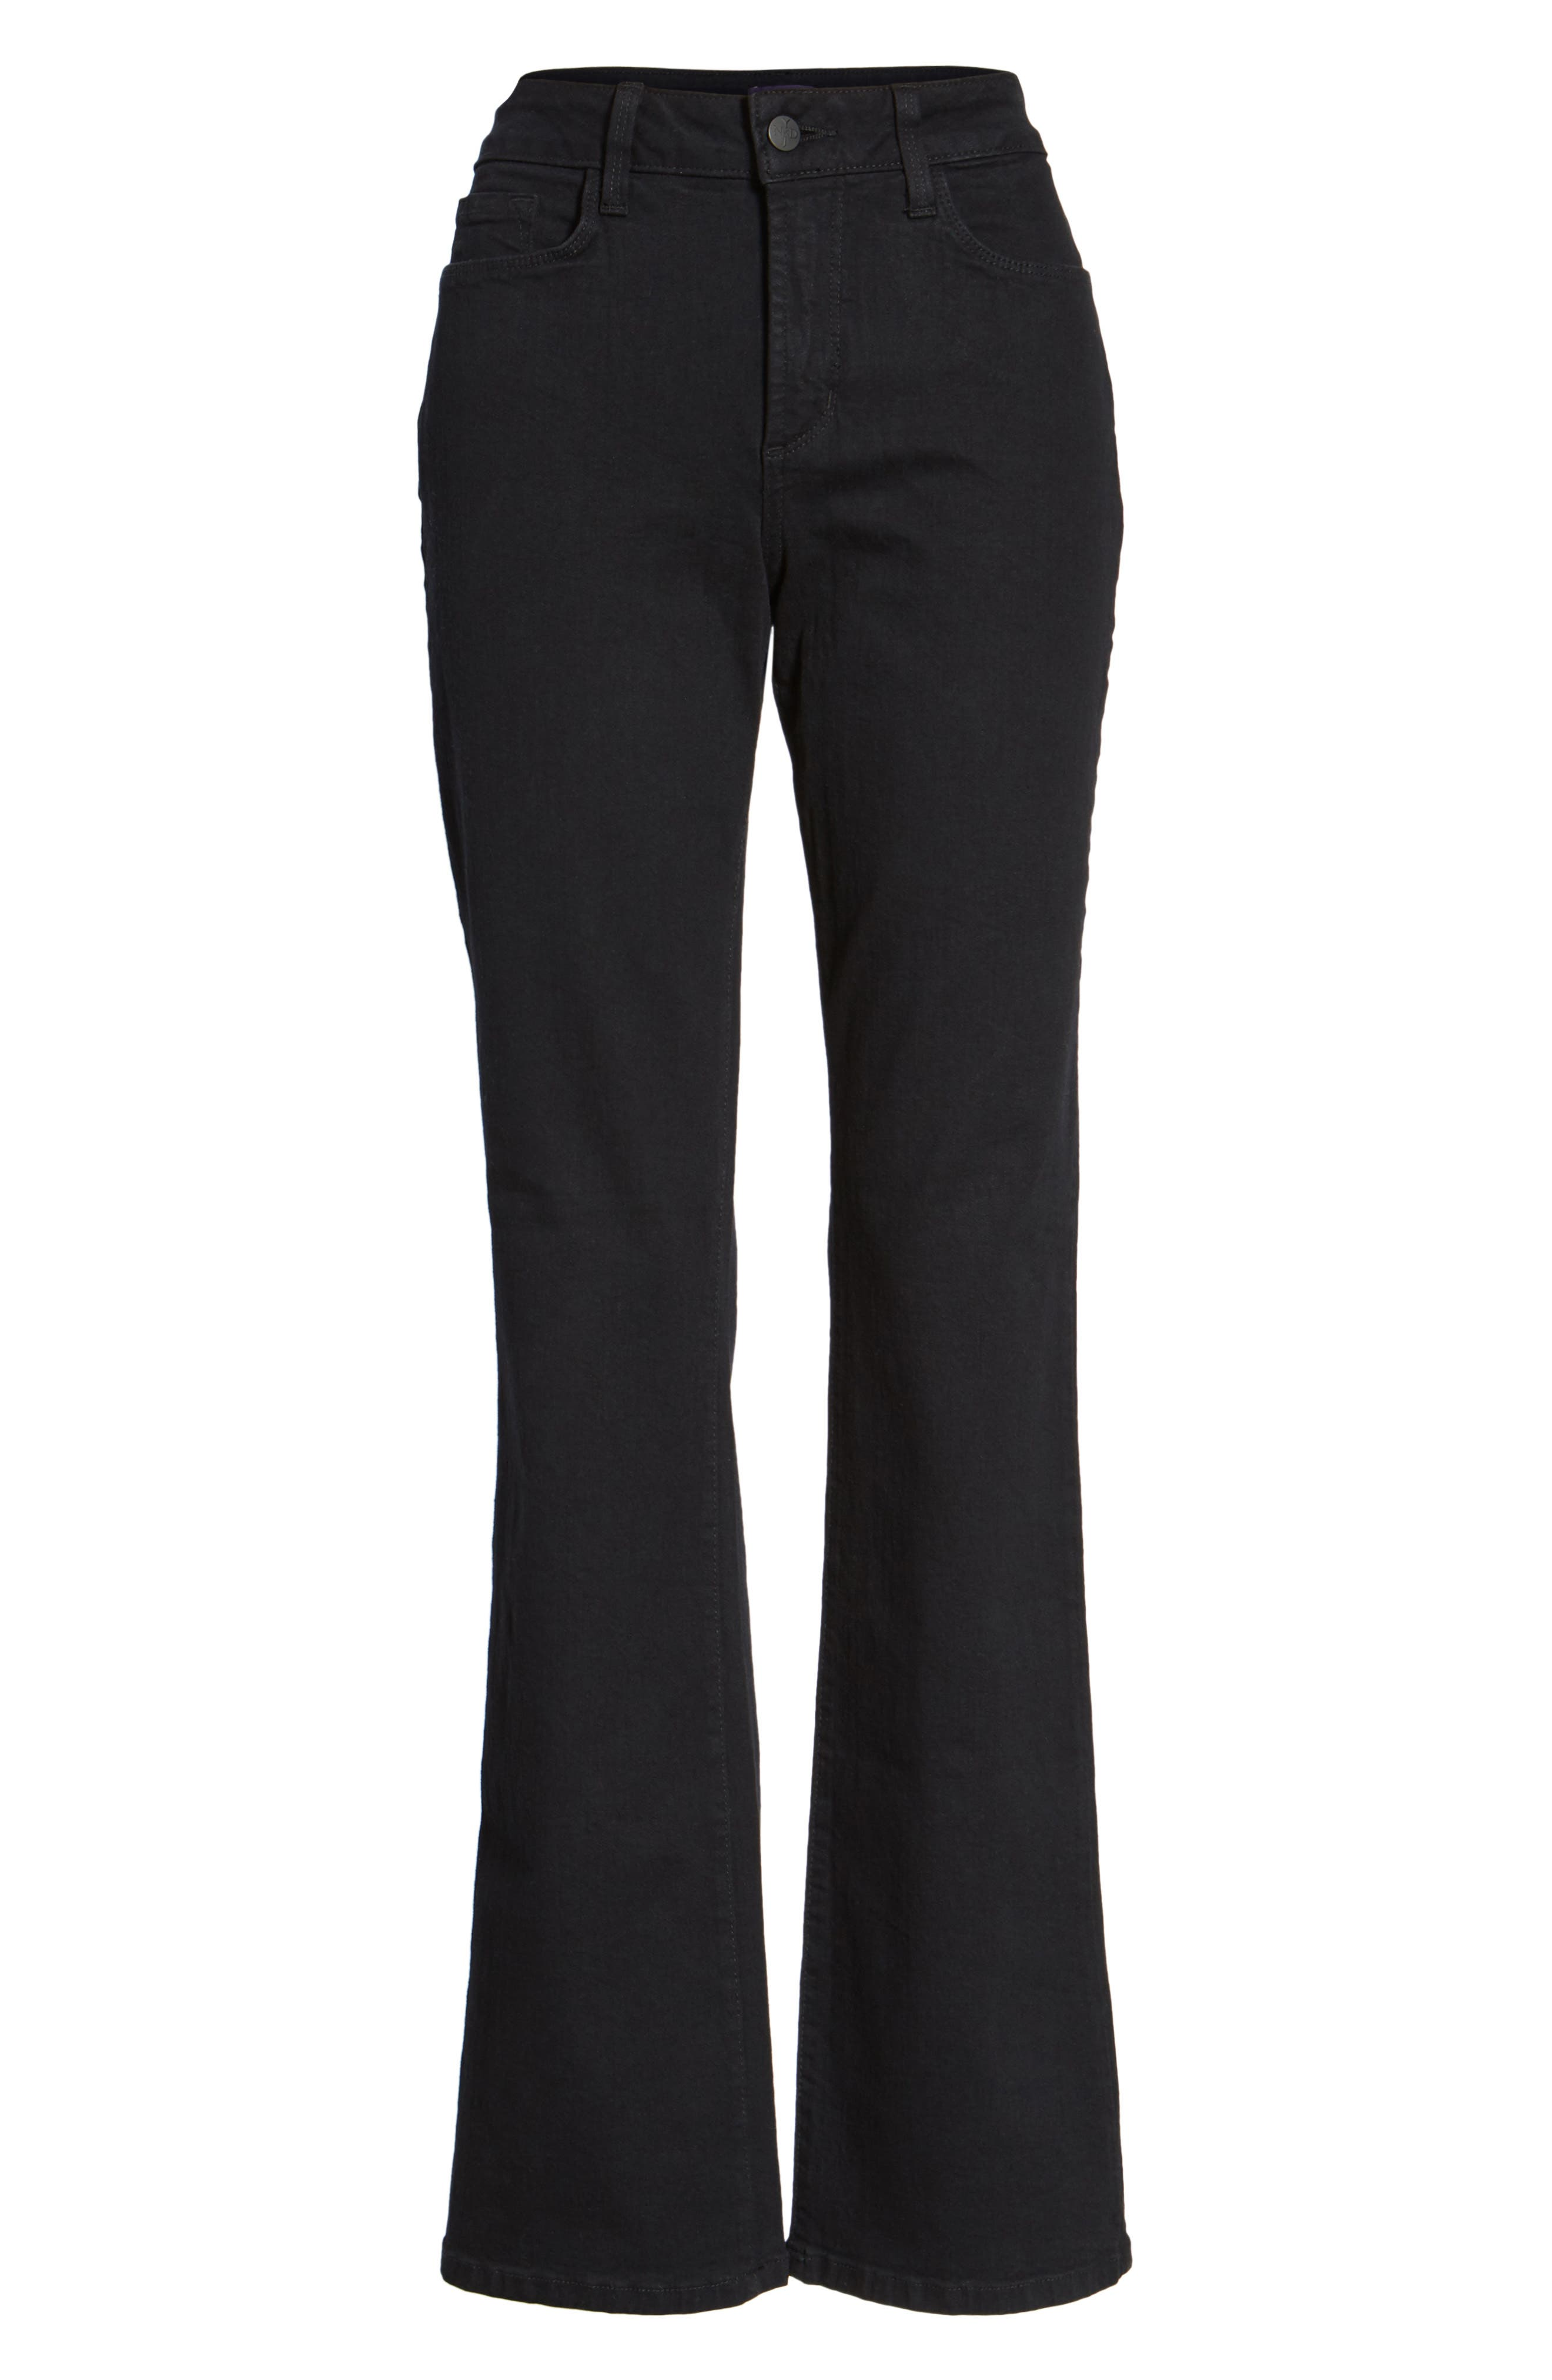 Barbara Stretch Bootcut Jeans,                         Main,                         color, 001